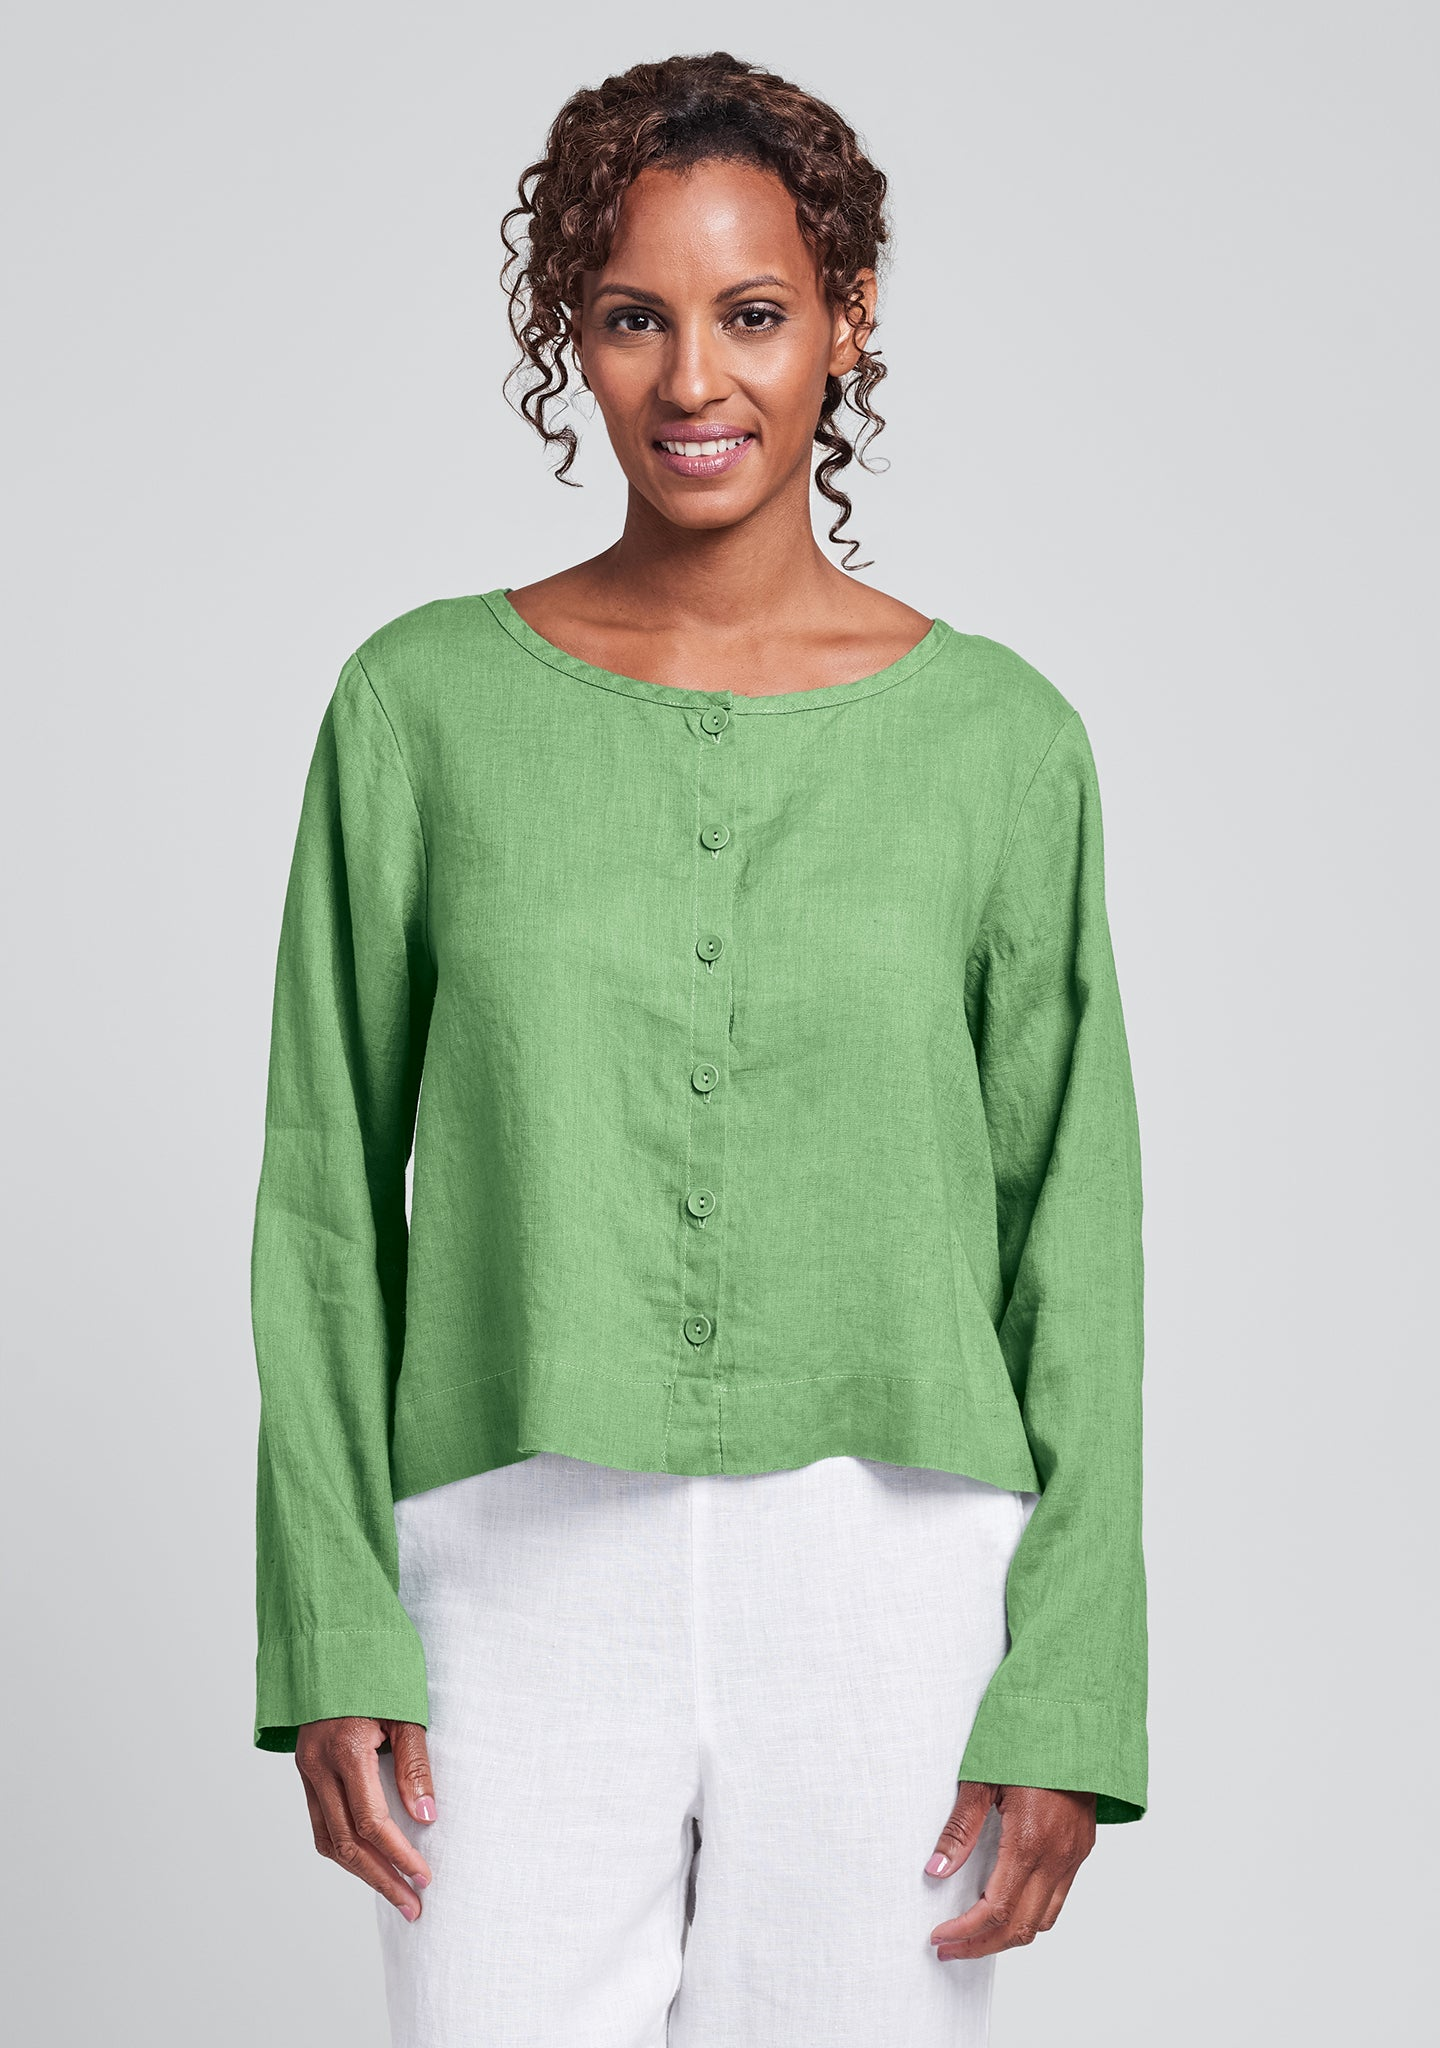 day cardi linen cardigan green